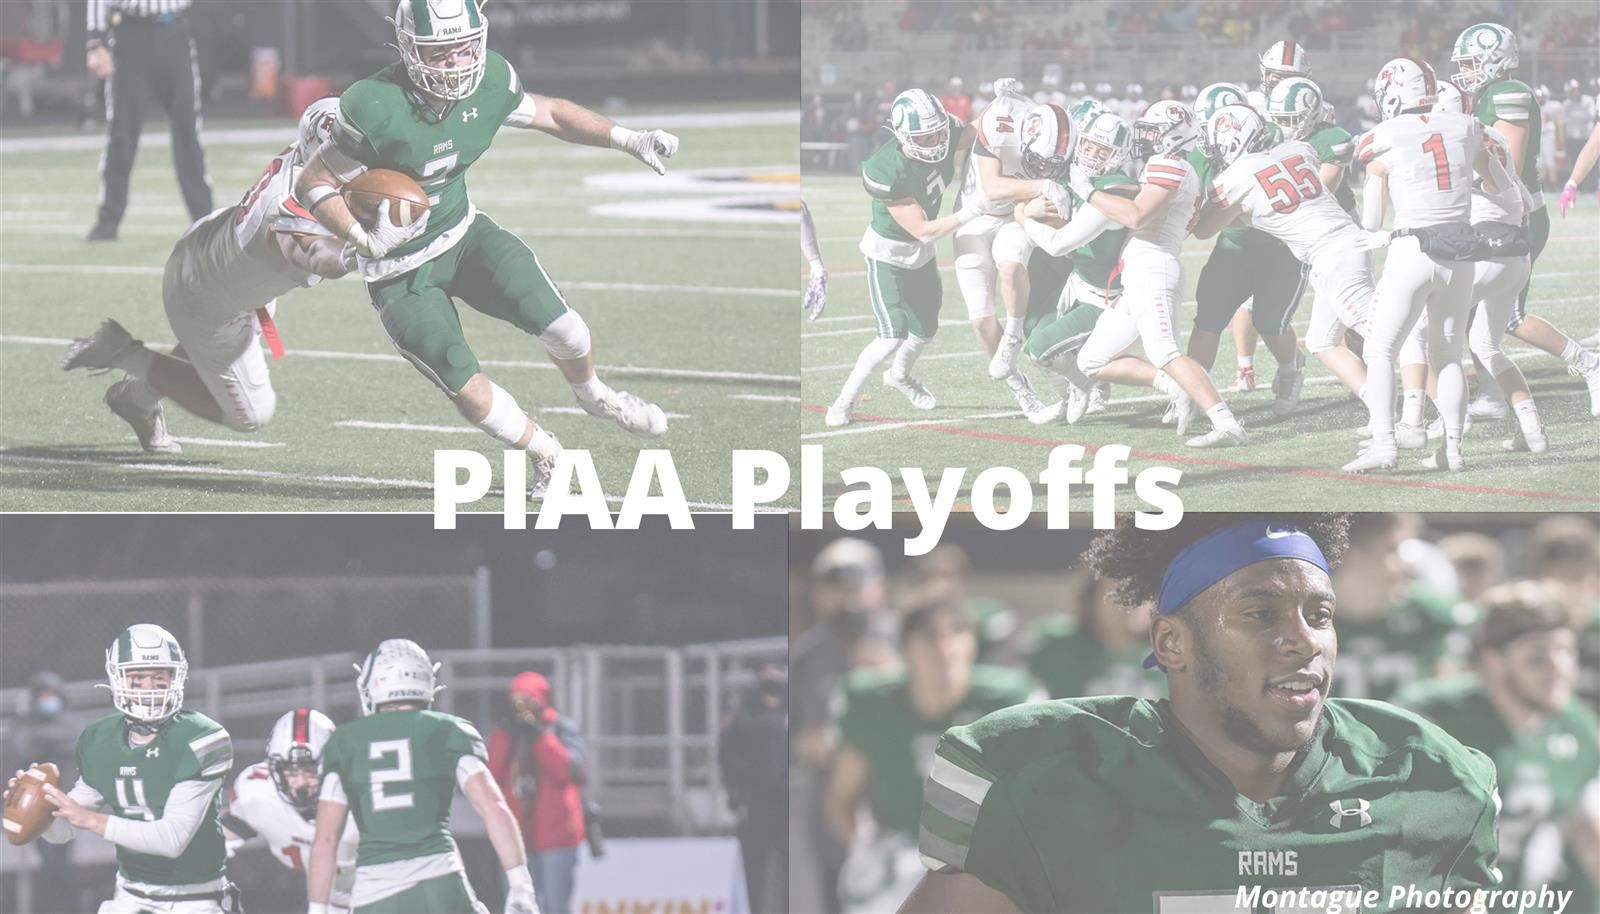 PIAA Playoffs